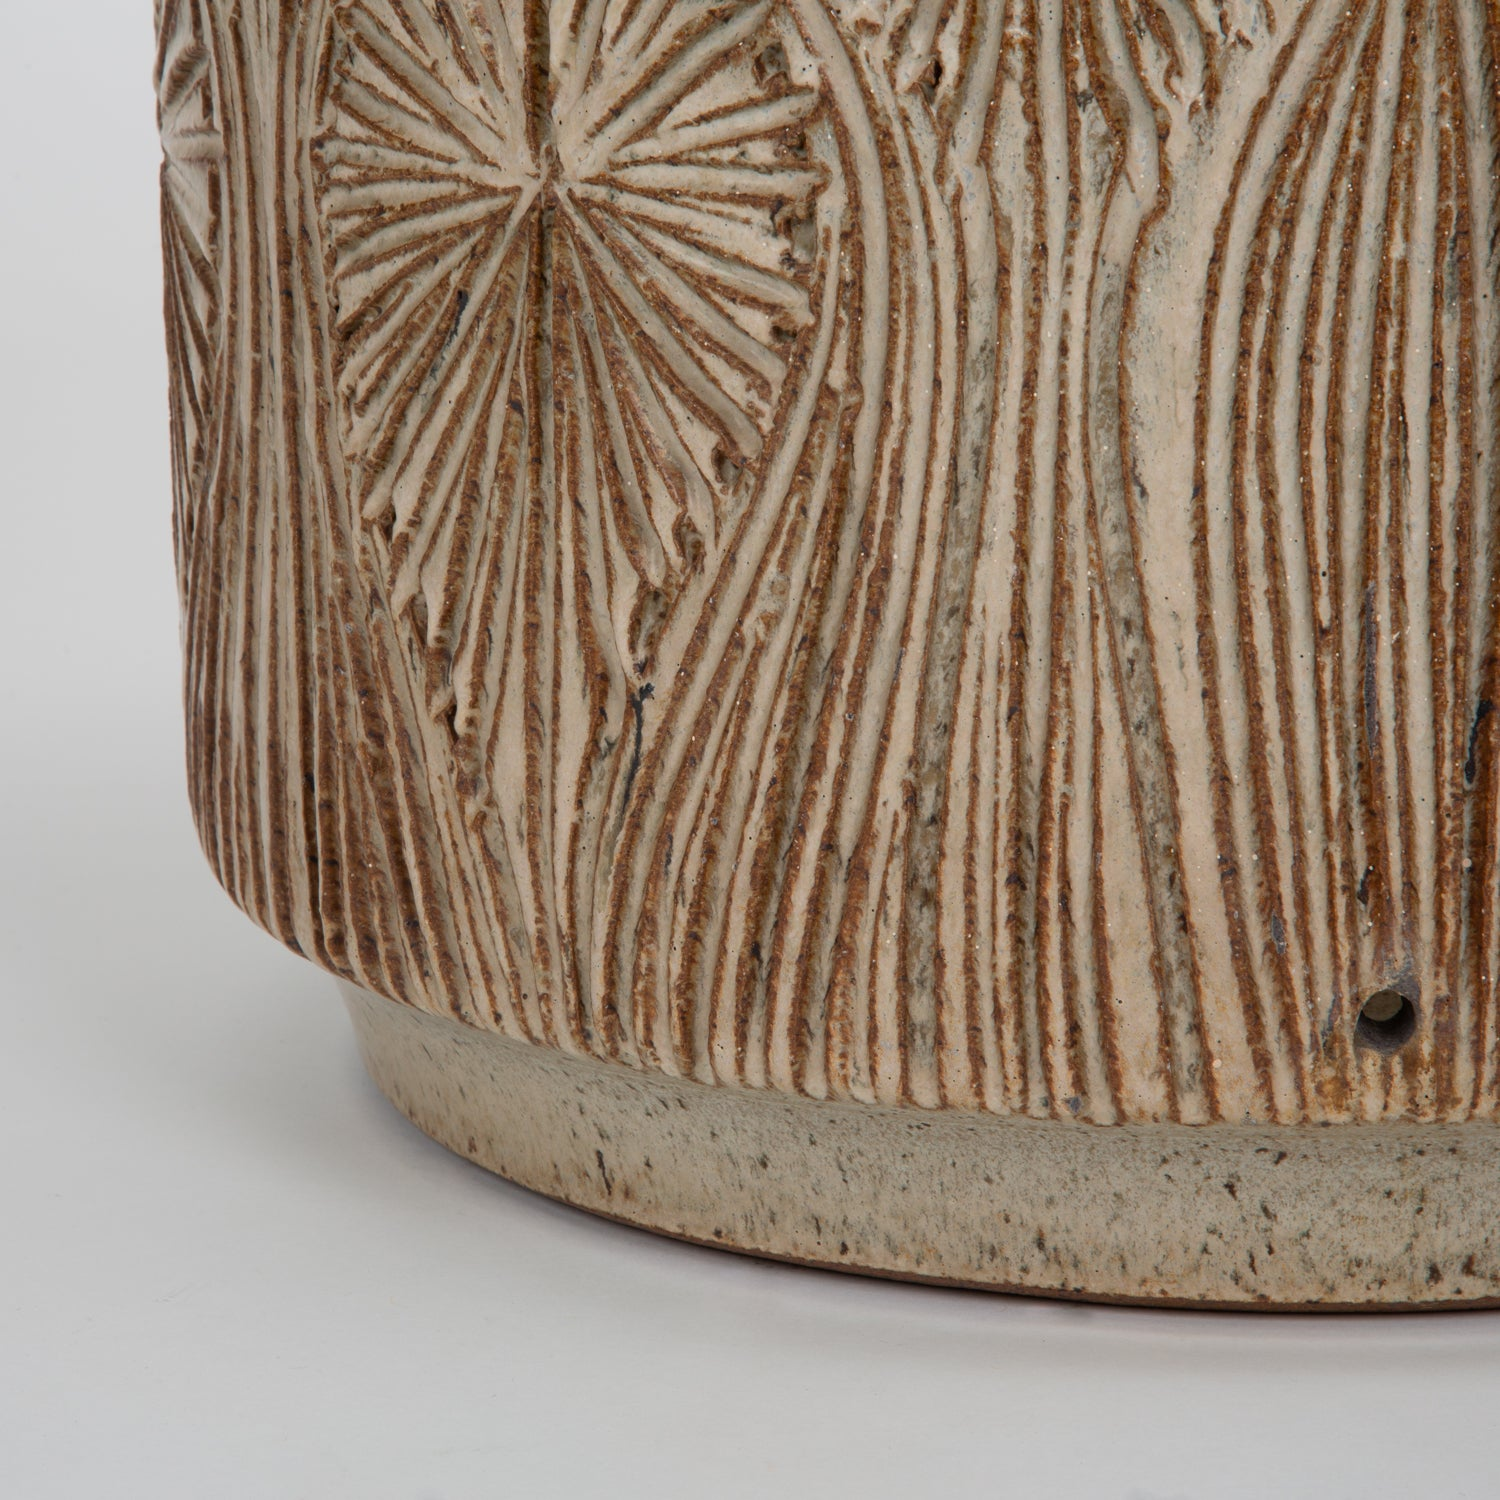 Incised  Teardrop Sunburst  Planter by Robert Maxwell and David Cressey for Earthgender